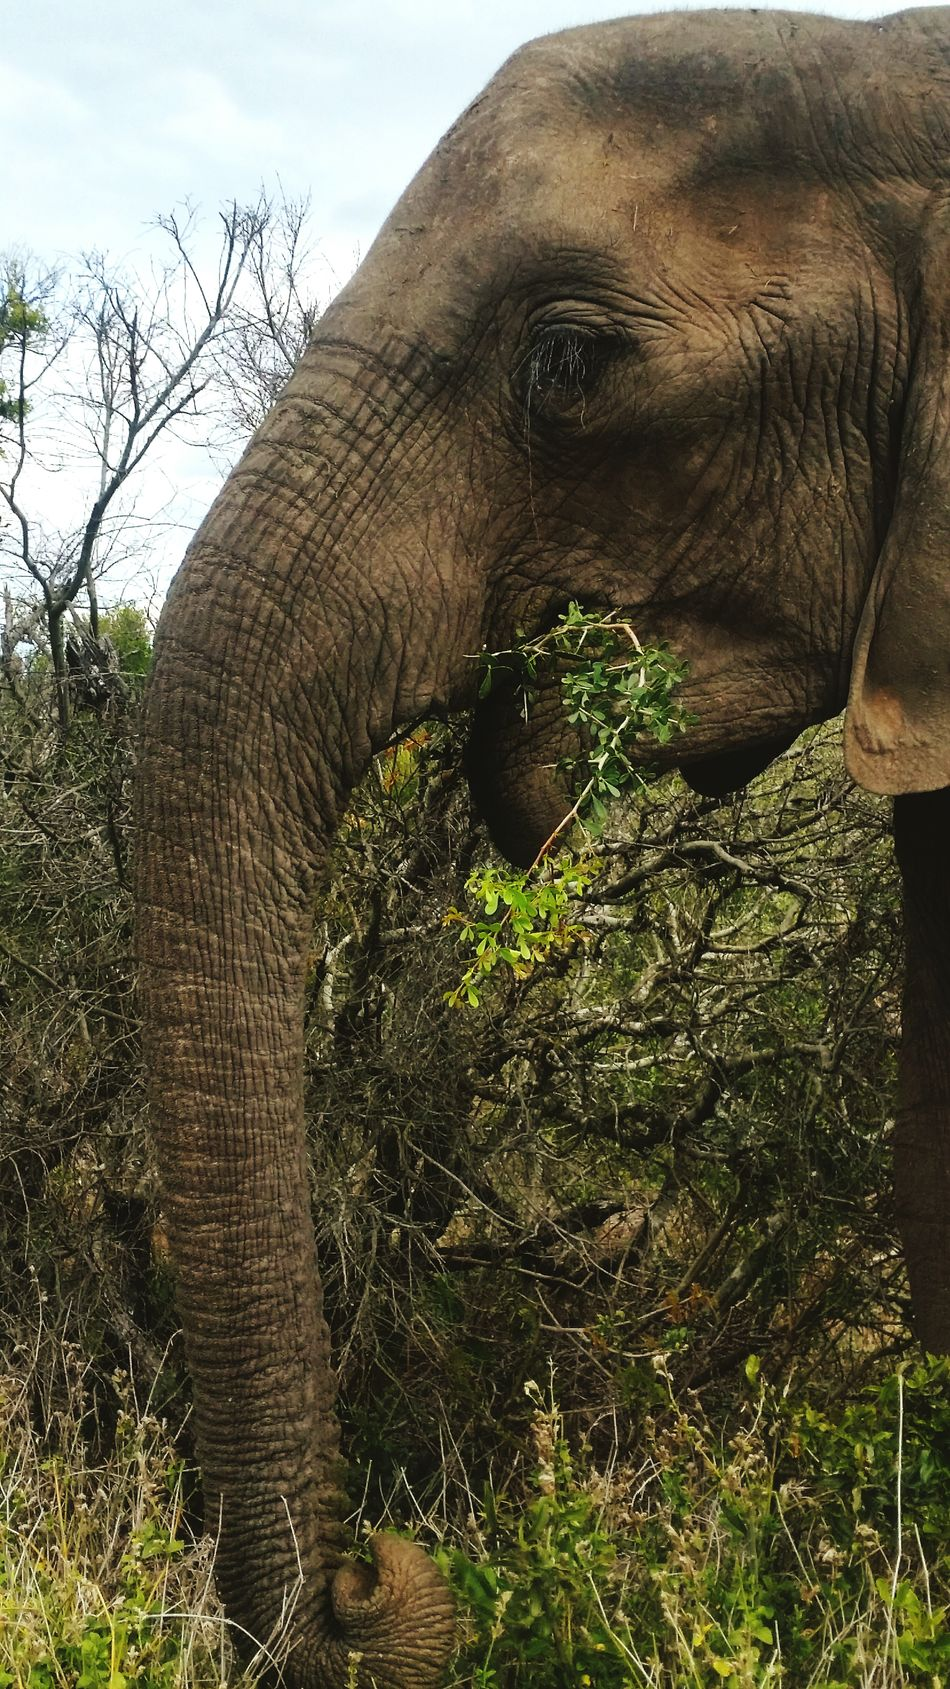 In memory of Hilton Crous Animal Wildlife No People Day Animals In The Wild Elephant Nature Outdoors Mammal Tree African Elephant Animal Themes Sky Tree Area Beauty In Nature Nature Safari Animals Animal Trunk Animals In The Wild One Animal Animal Close-up Tree Tusk